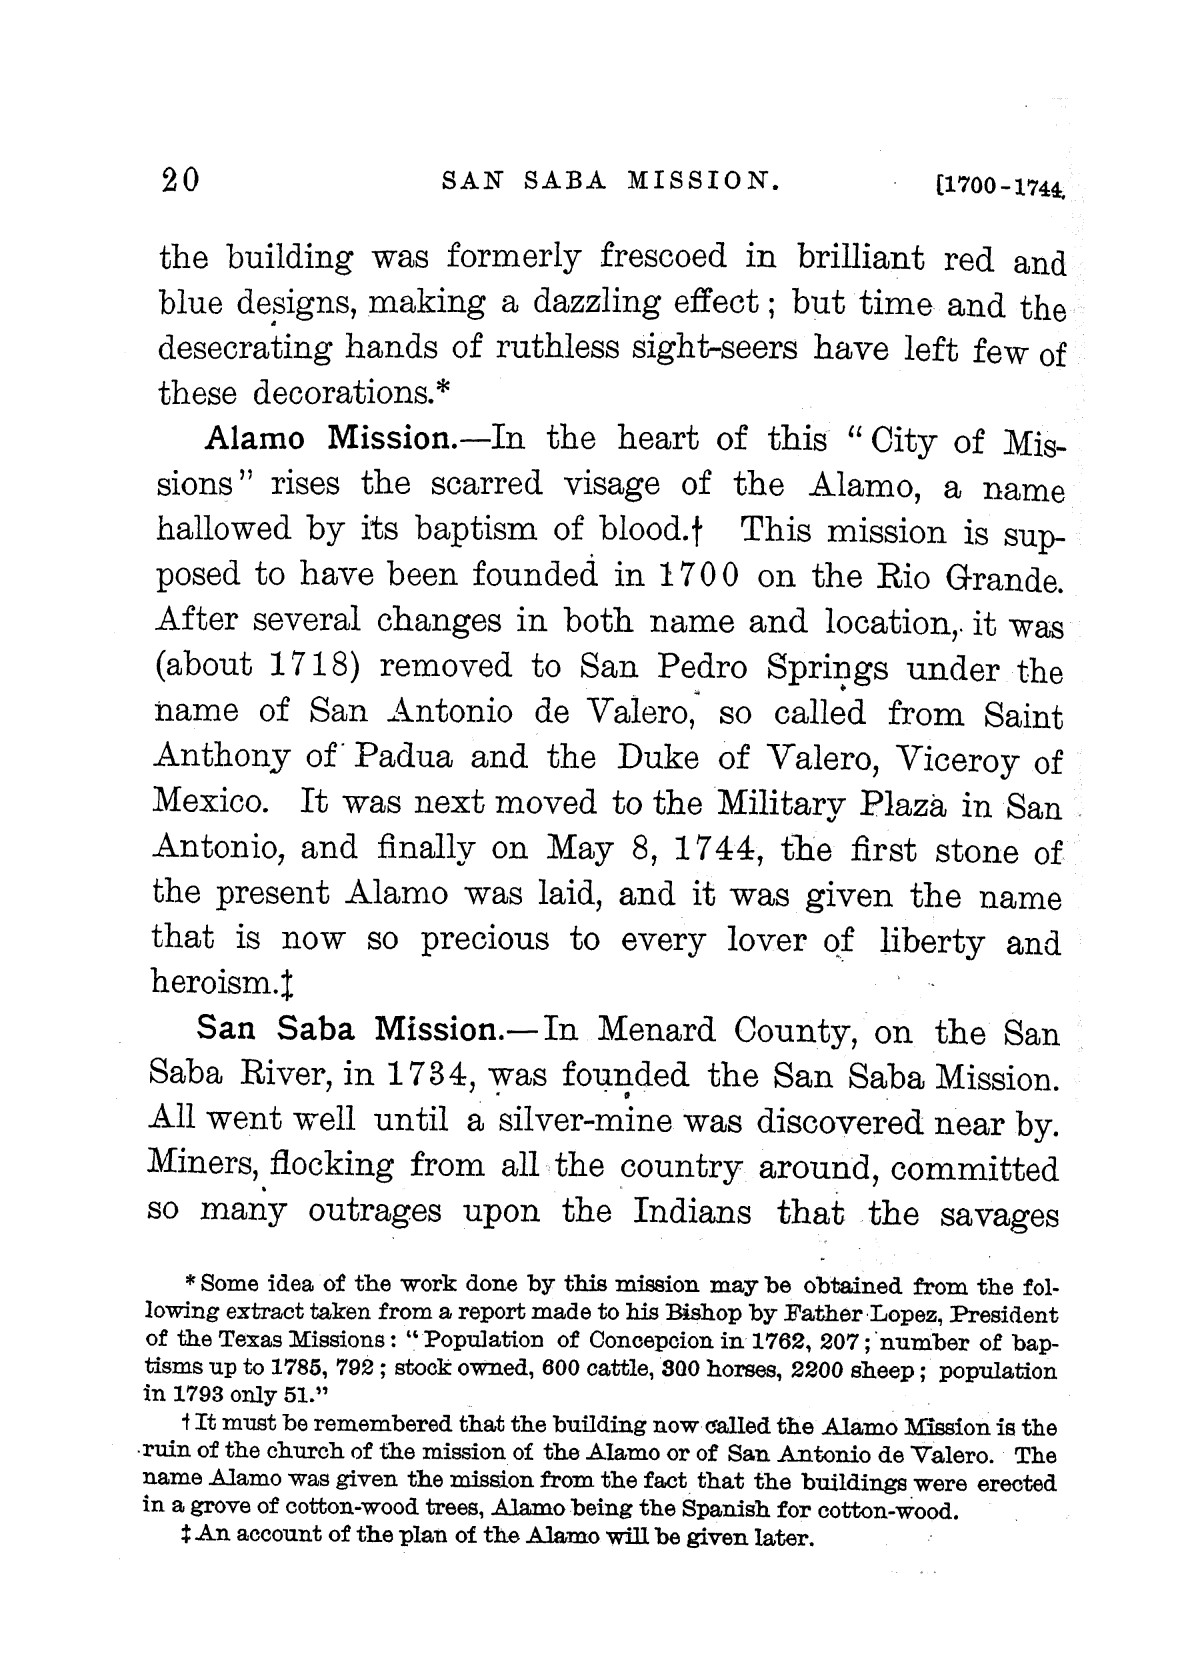 A new history of Texas for schools : also for general reading and for teachers preparing themselves for examination                                                                                                      [Sequence #]: 32 of 412